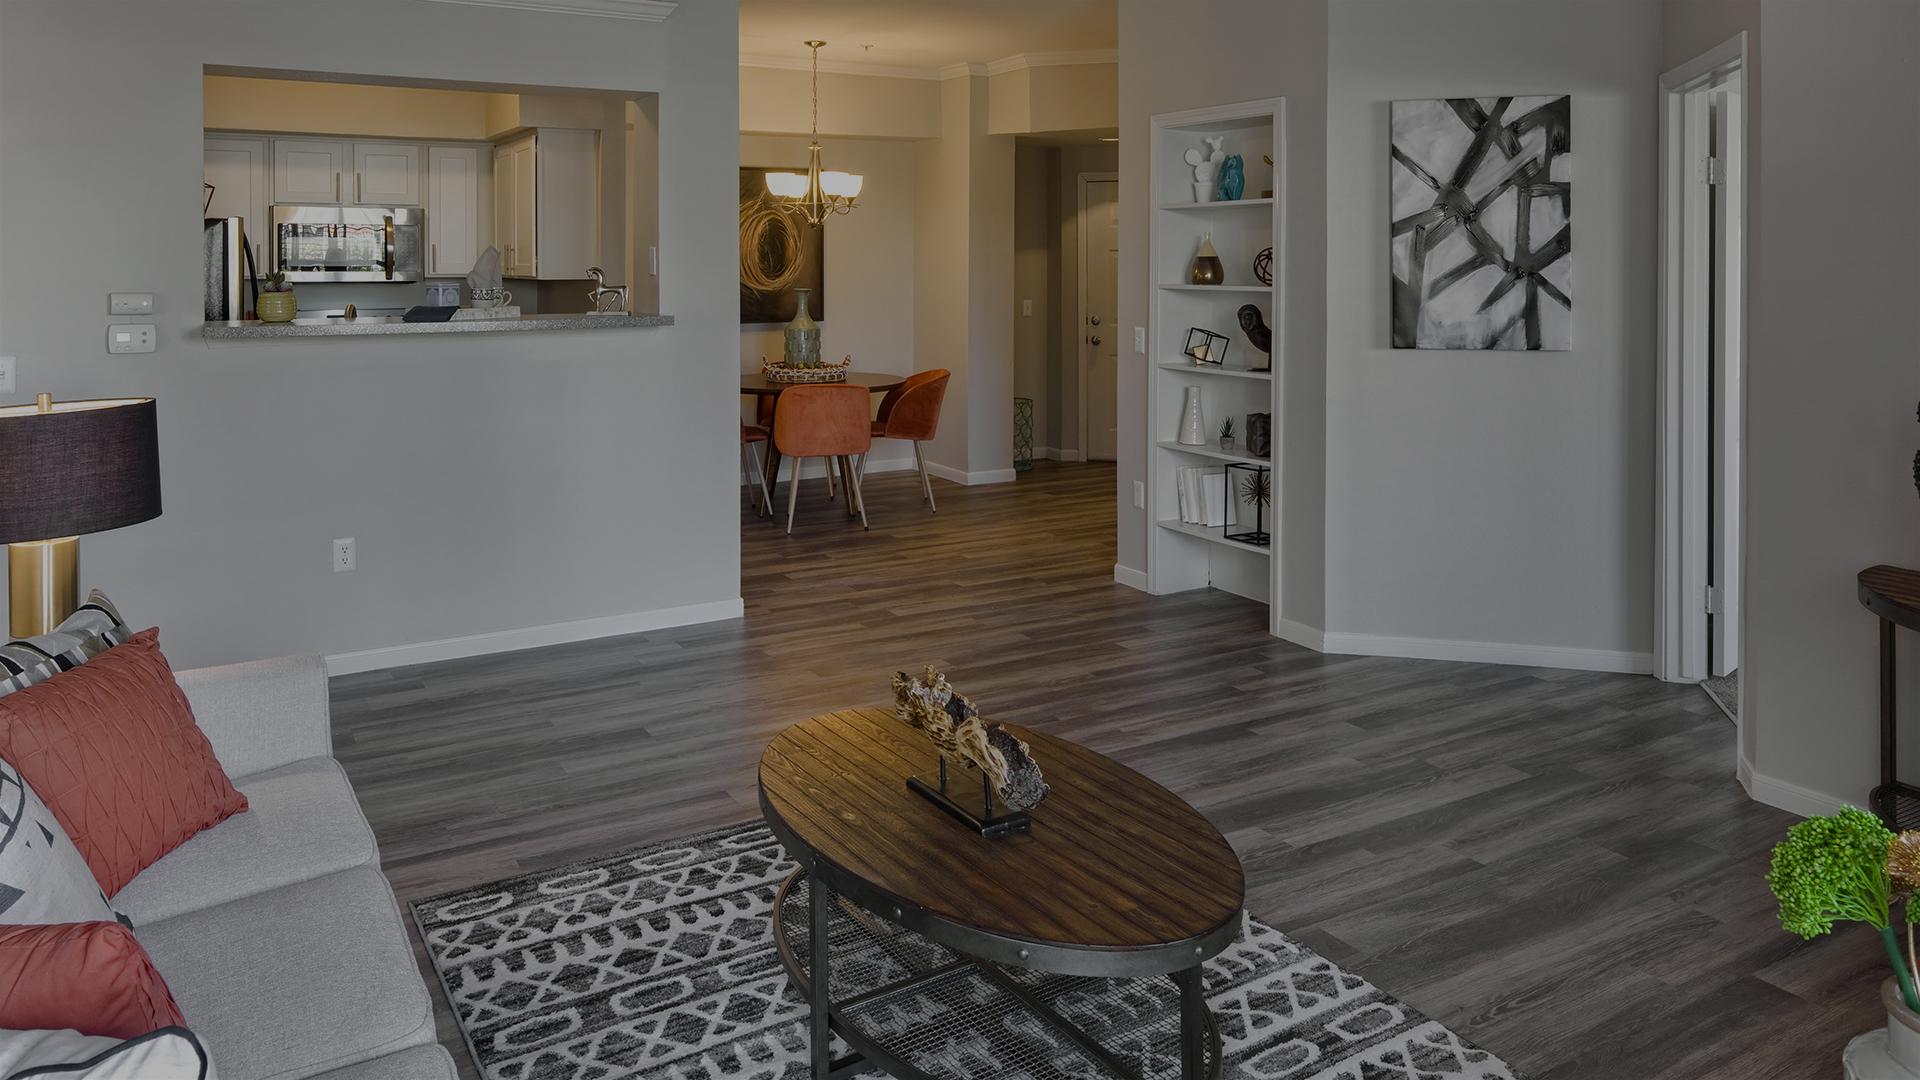 Apartments in albuquerque nm 87111 the enclave - One bedroom apartments in albuquerque ...